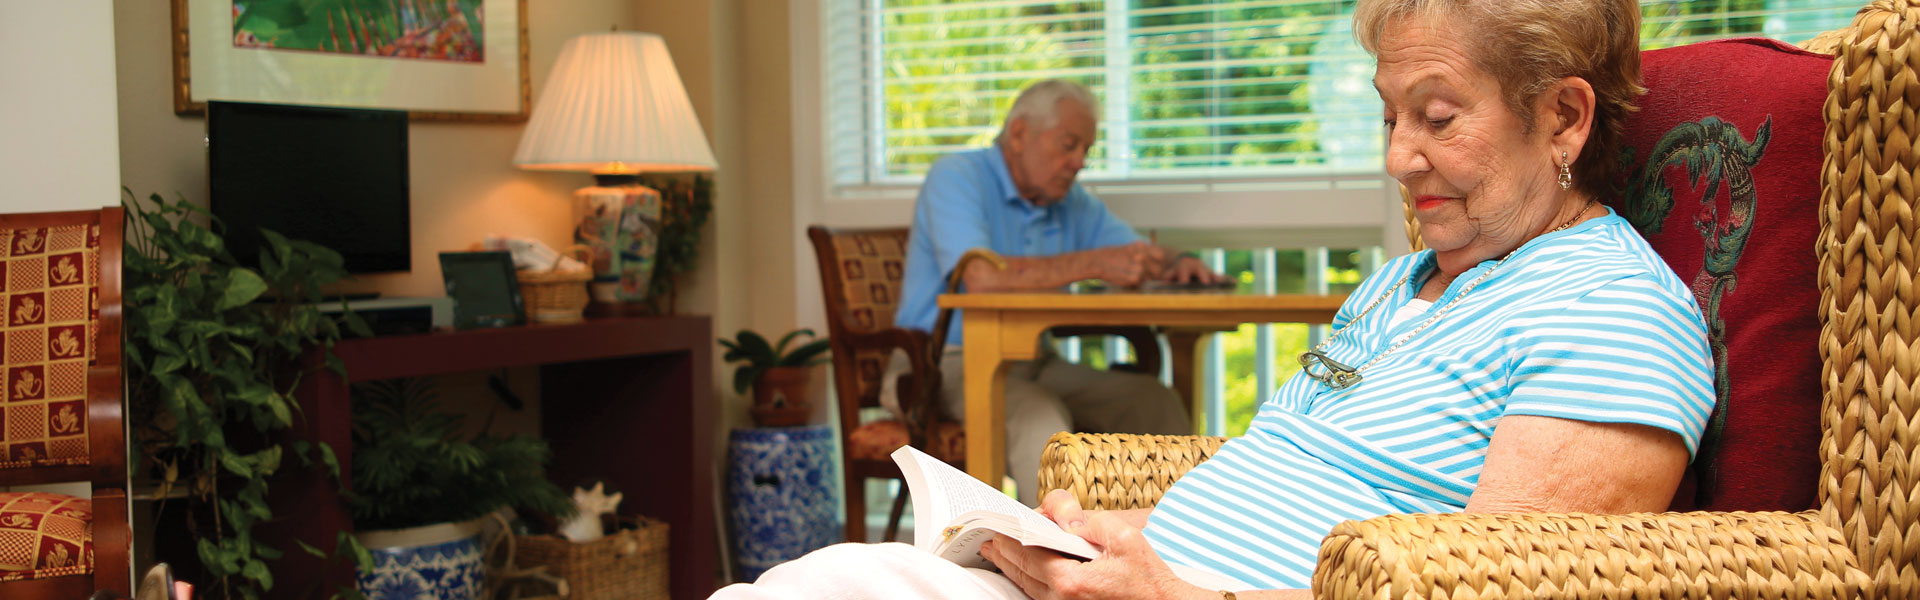 Life Care Services Ranked Highest in Customer Satisfaction in J.D. Power 2019 U.S. Senior Living Study